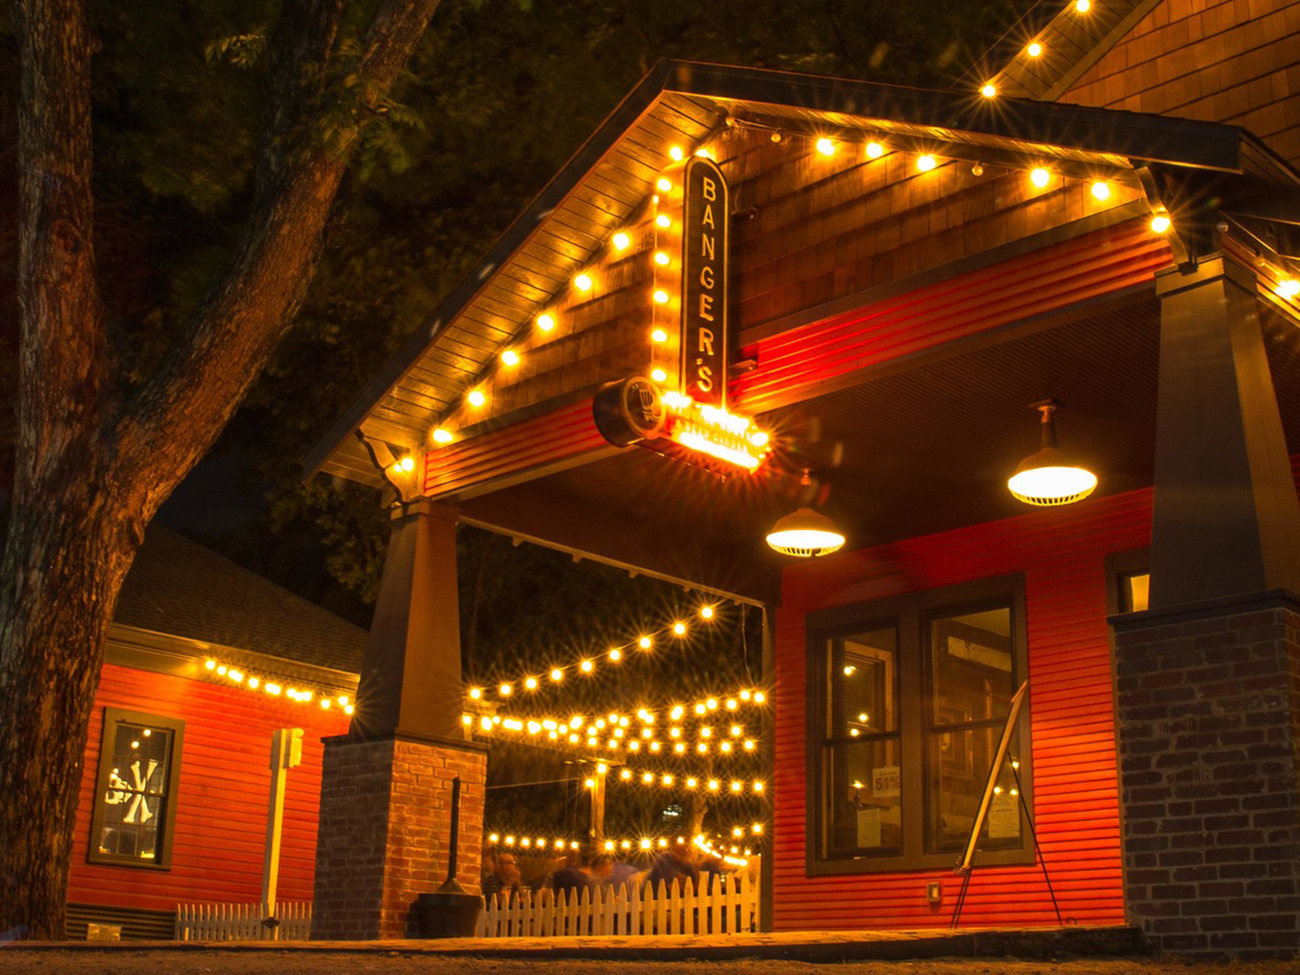 Banger's Sausage House & Beer Garden Bar in Austin